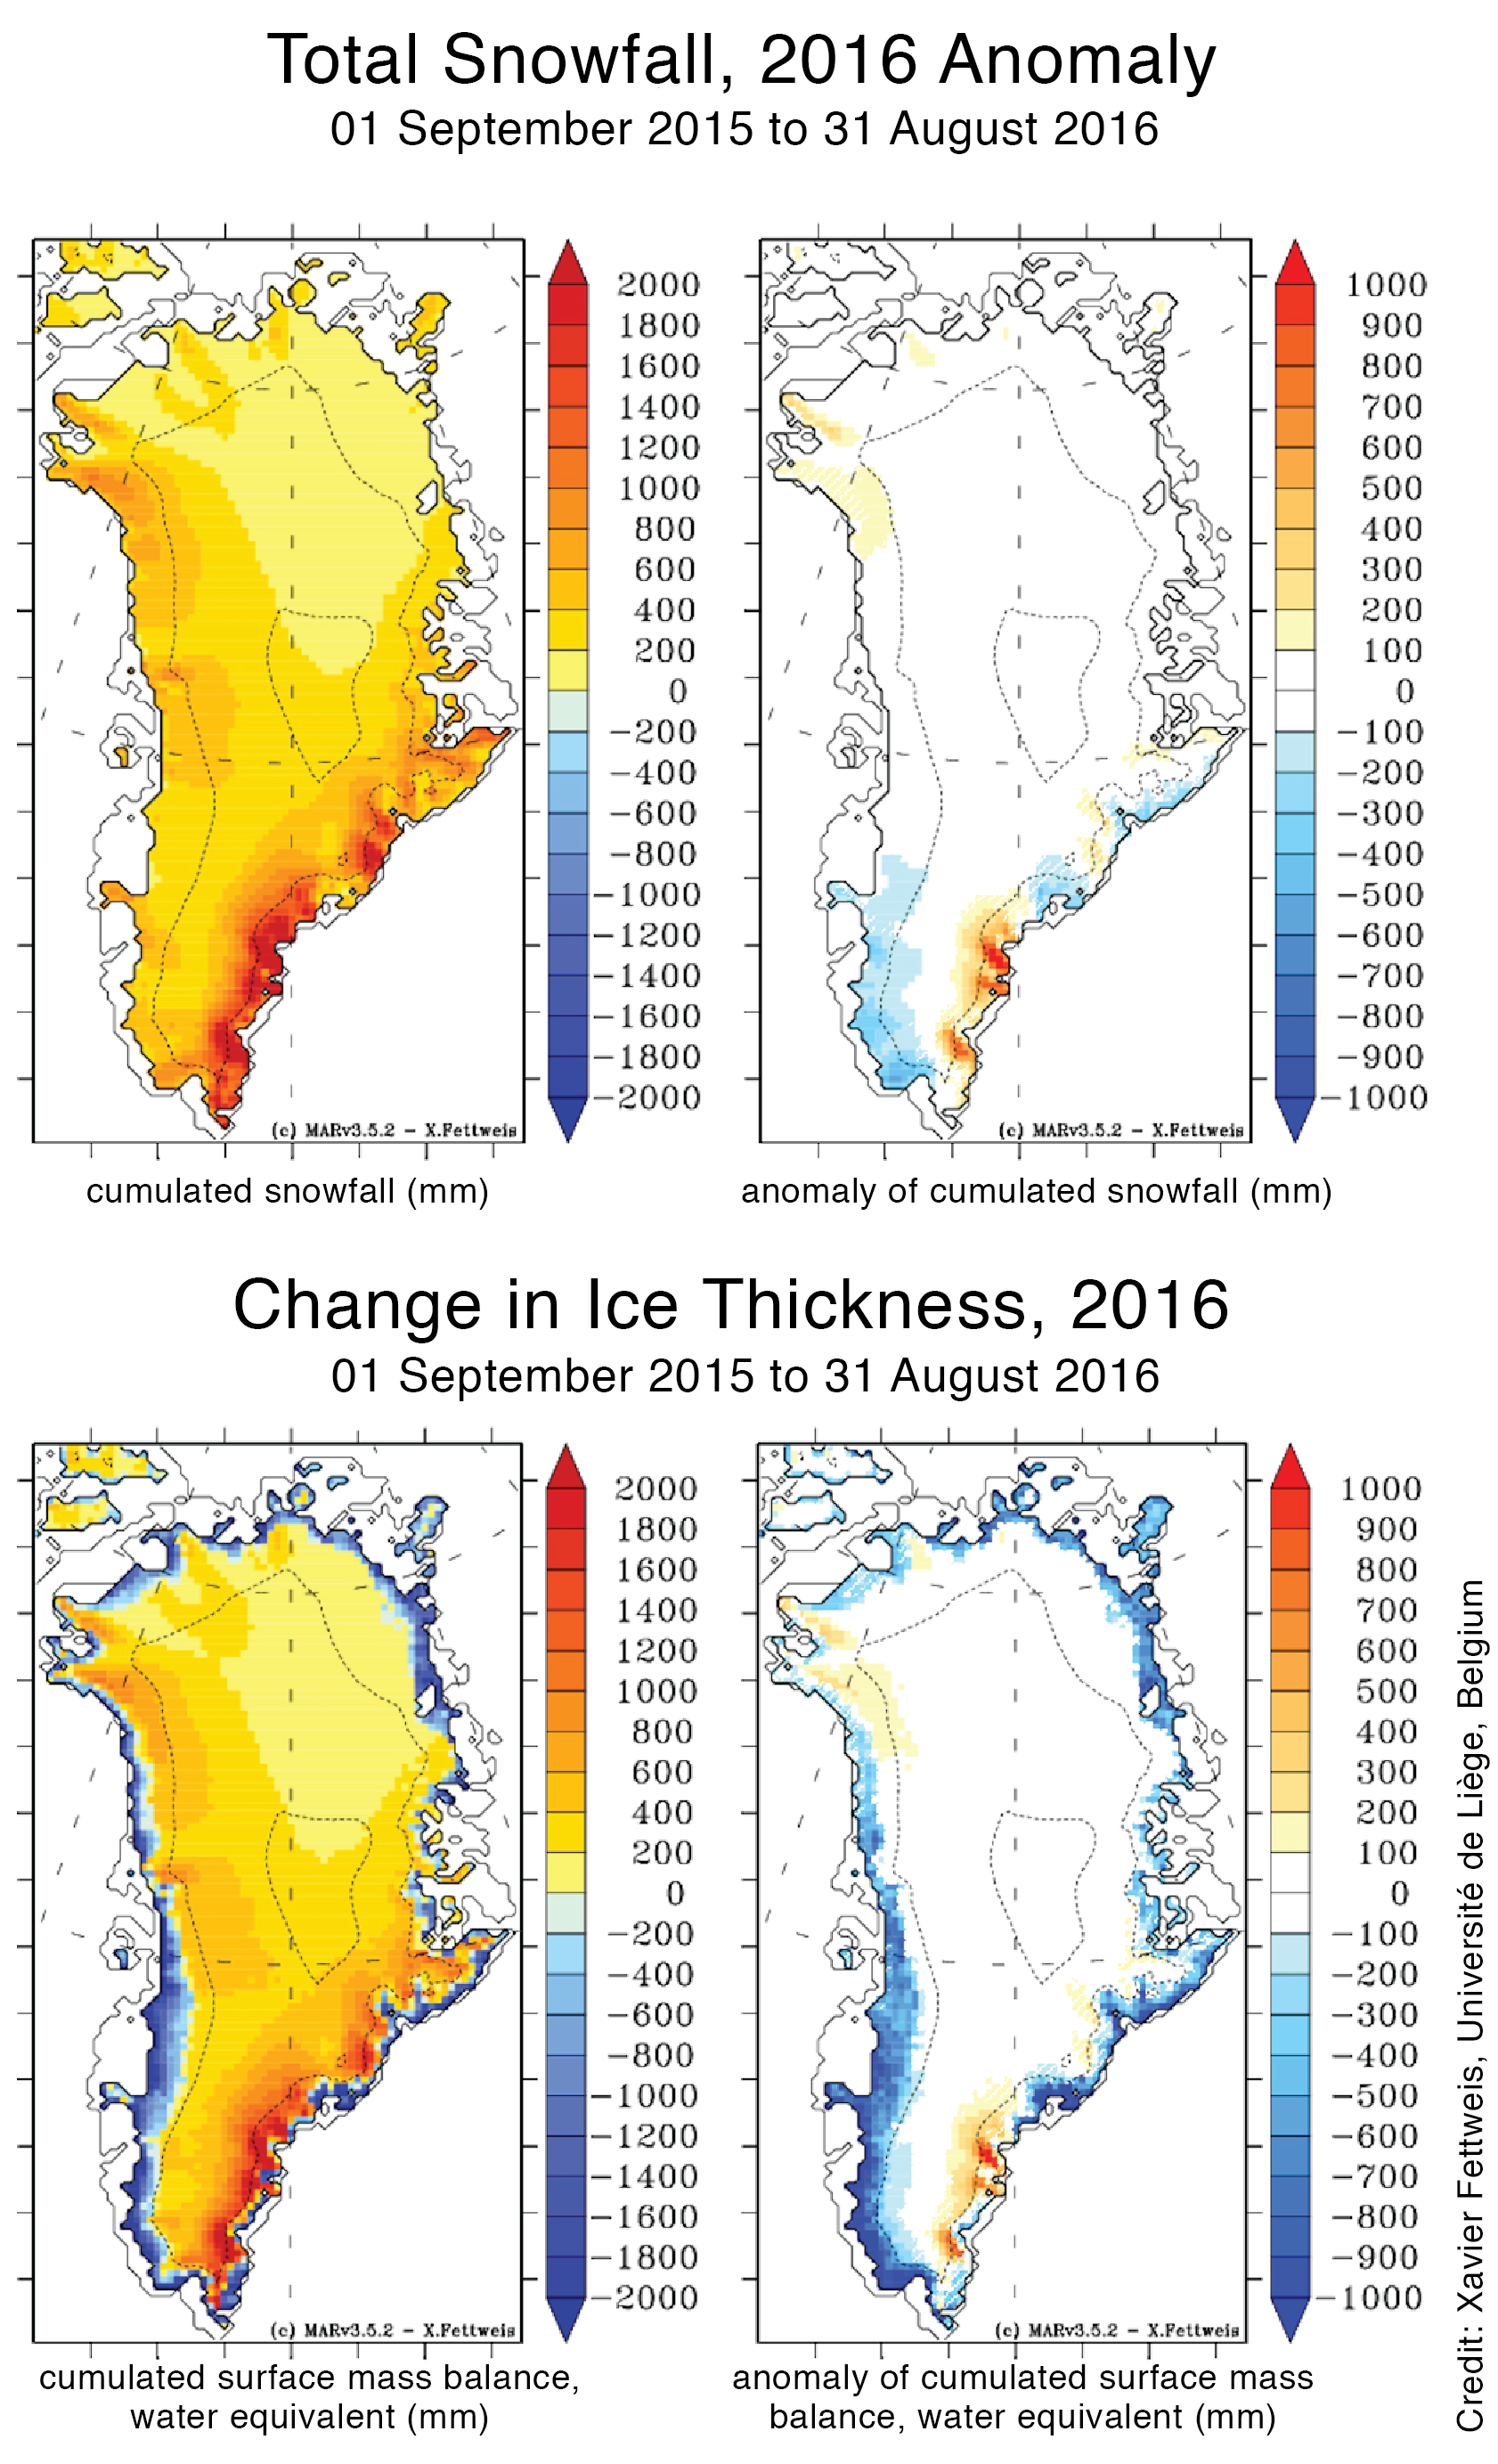 the top left map shows cumulated snowfall water equivalent in millimeters while the right shows anomaly of snowfall for greenland from 2015 to 2016